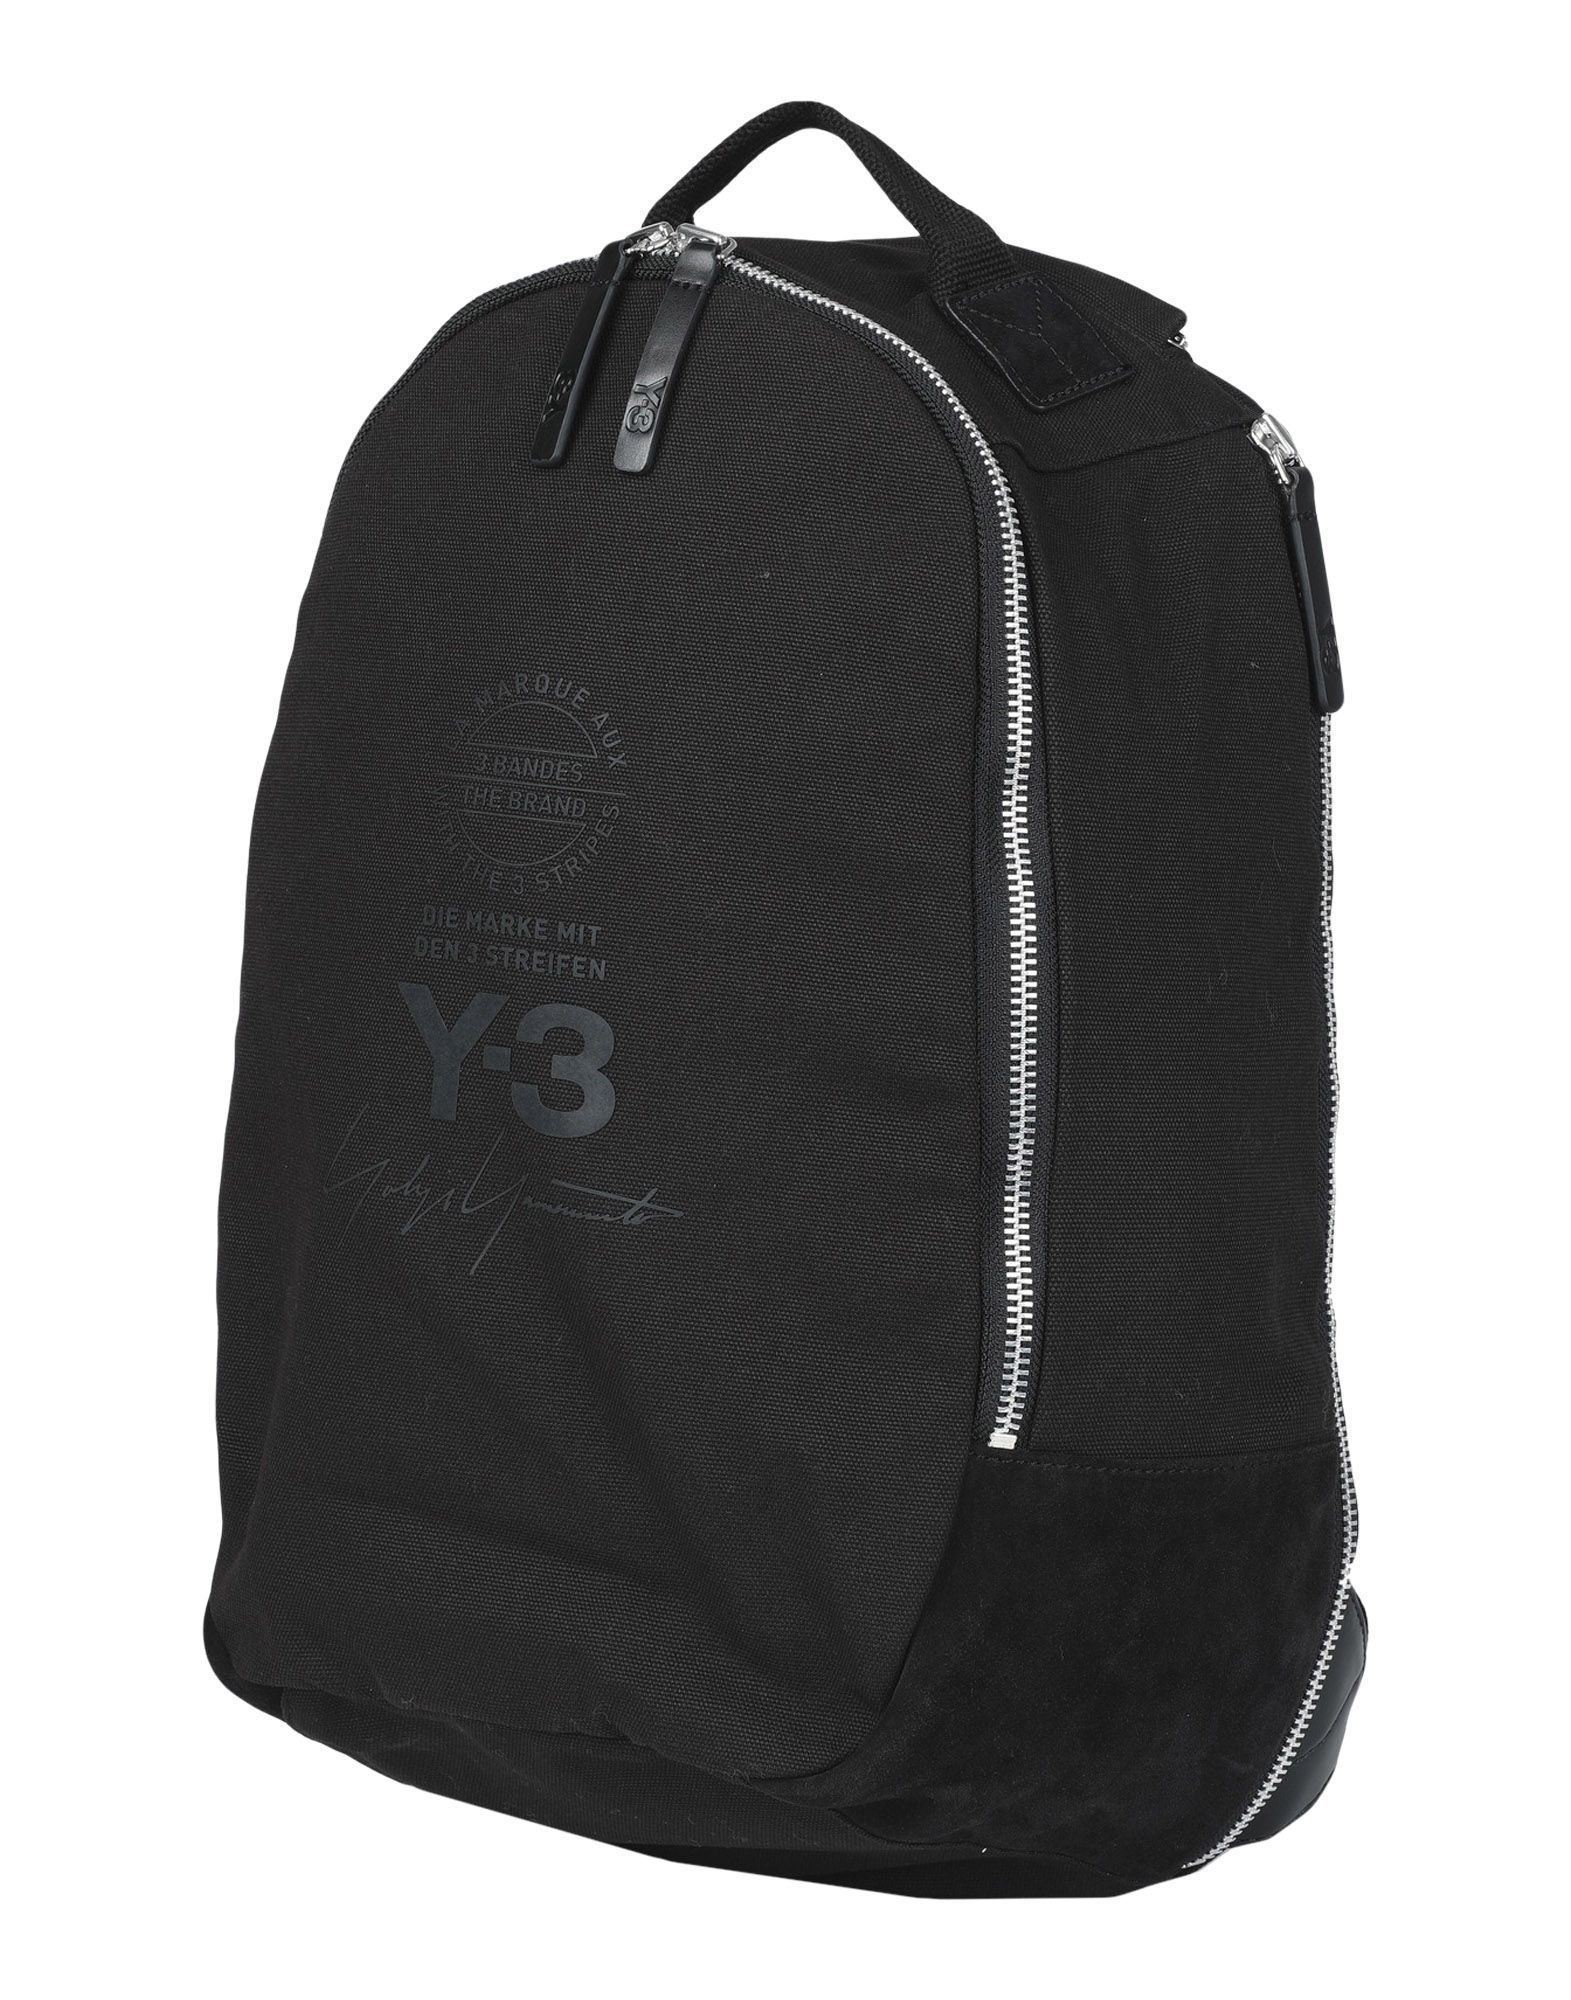 dfe8ca9dbf85 Y-3 BACKPACKS   FANNY PACKS.  y-3  bags  canvas  backpacks  suede  cotton